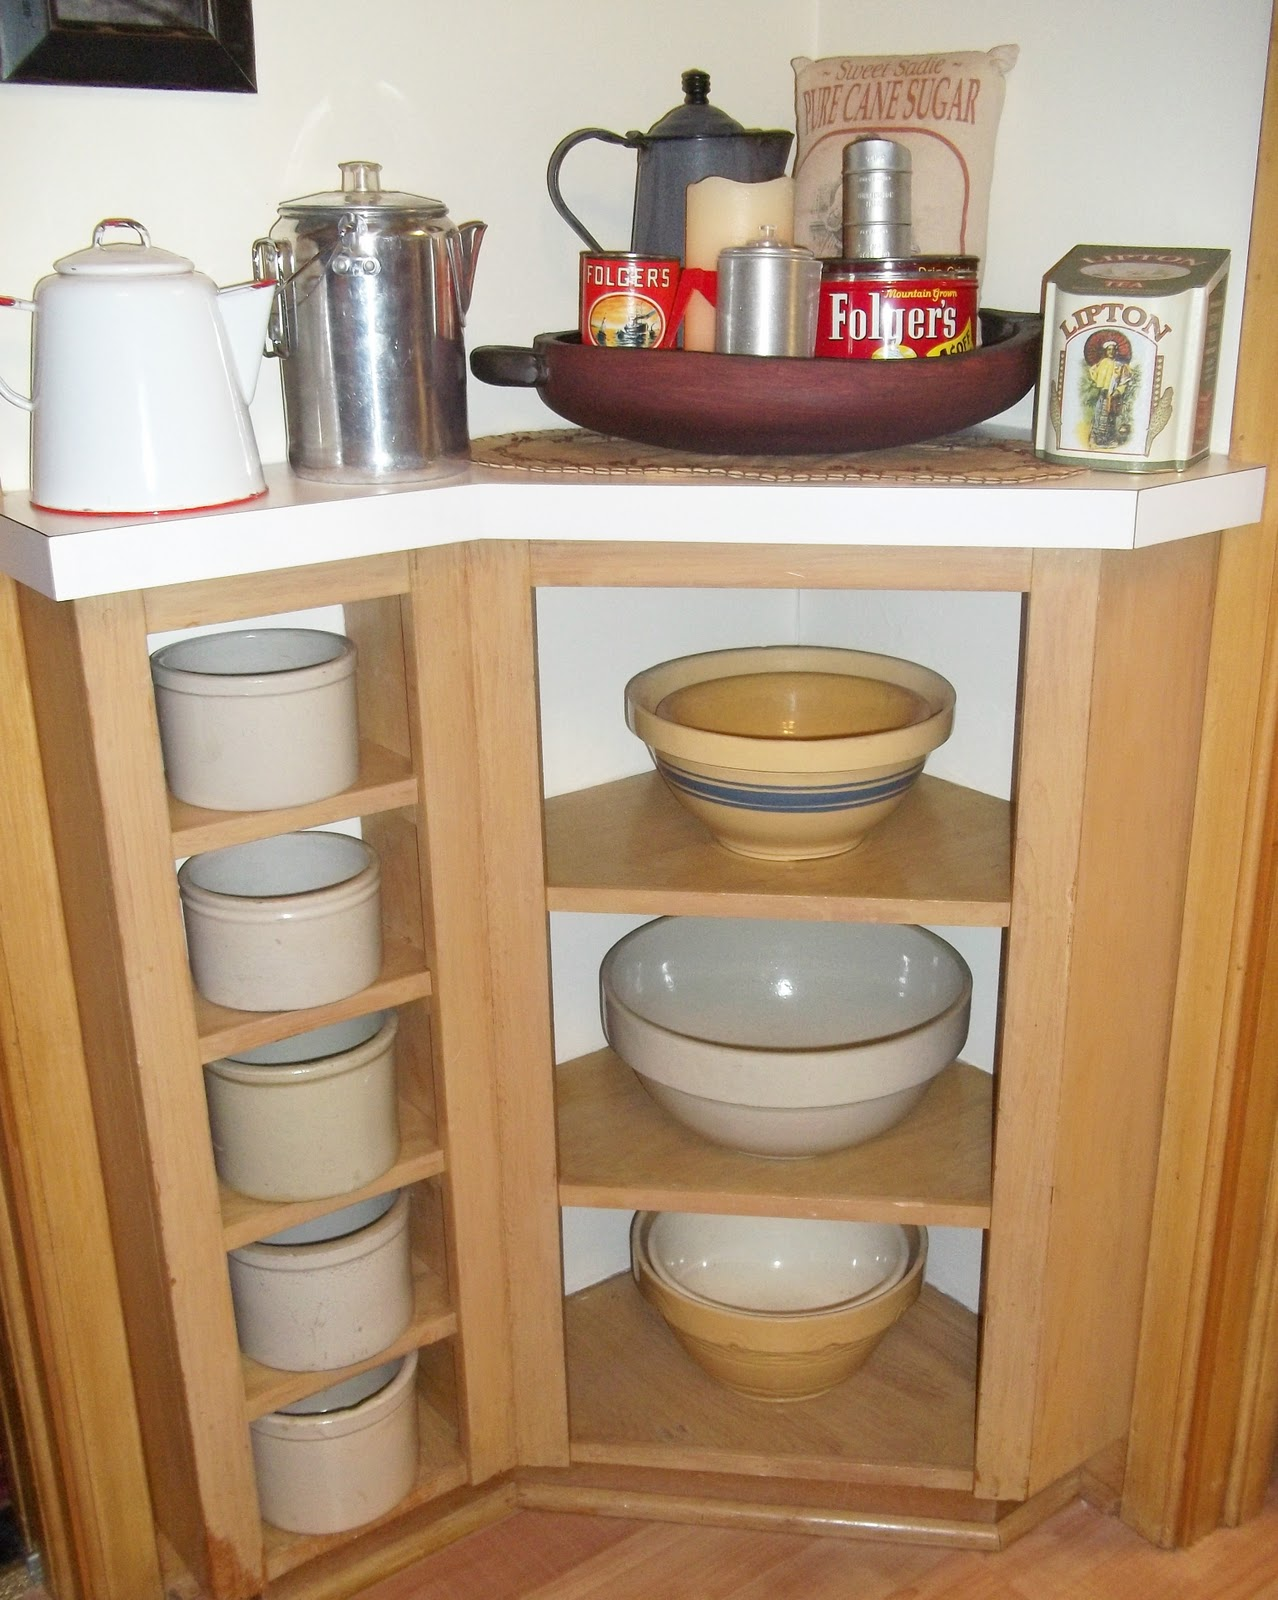 Kitchen Corner Shelves | 1278 x 1600 · 263 kB · jpeg | 1278 x 1600 · 263 kB · jpeg